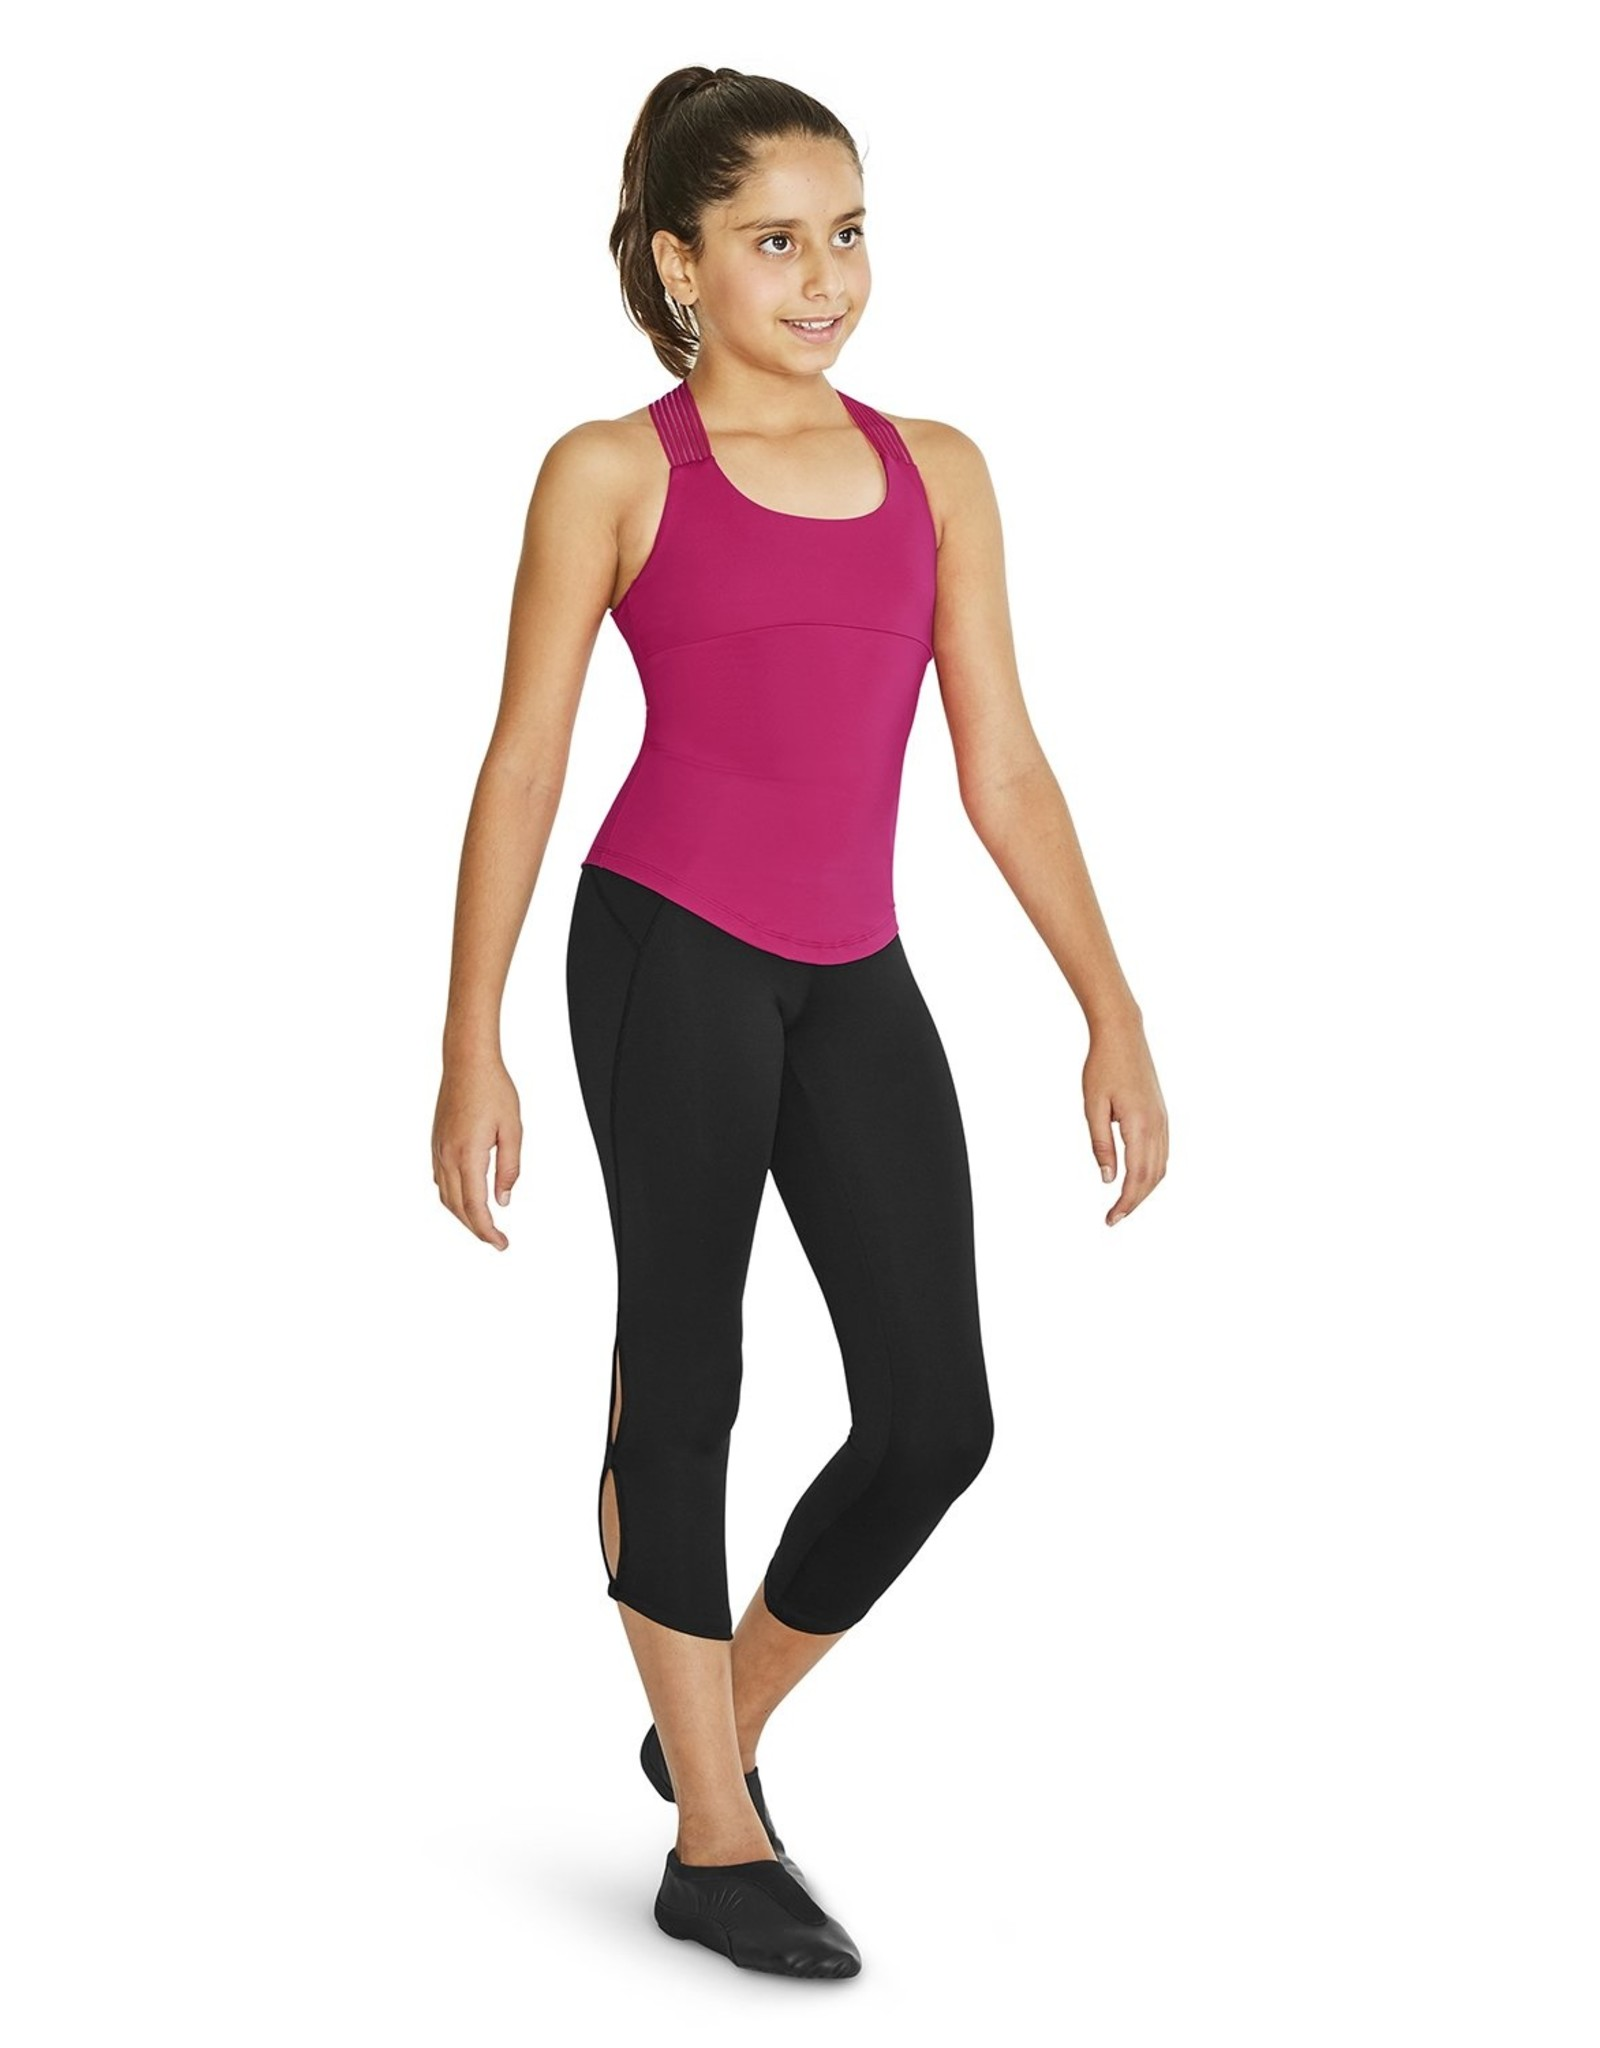 BLOCH GIRL'S CROSS BACK TANK TOP